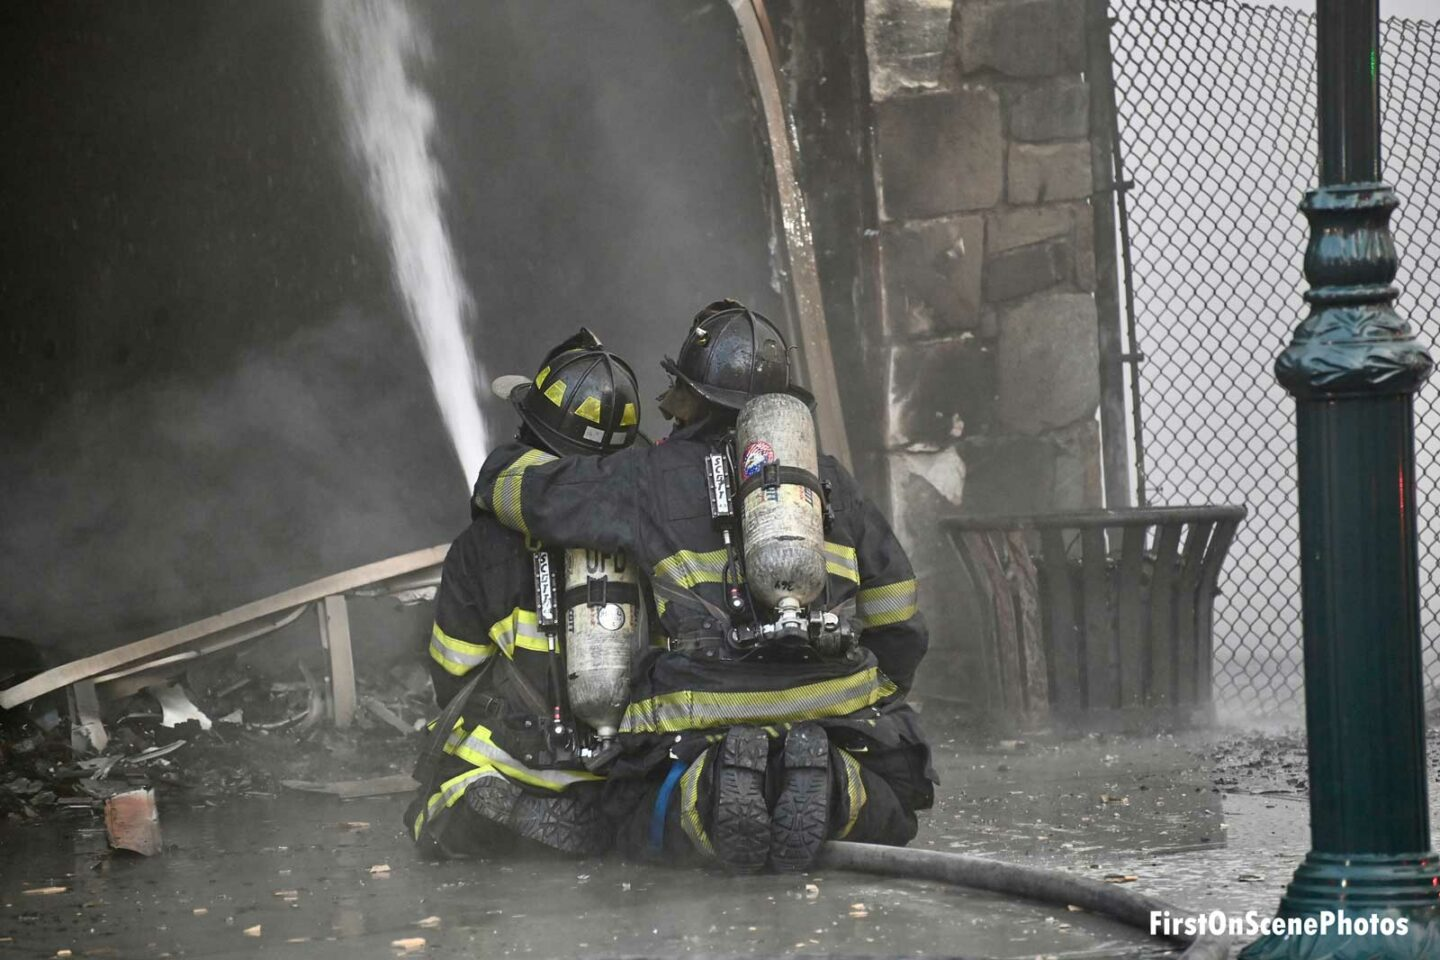 Firefighters on a hoseline at a commercial fire